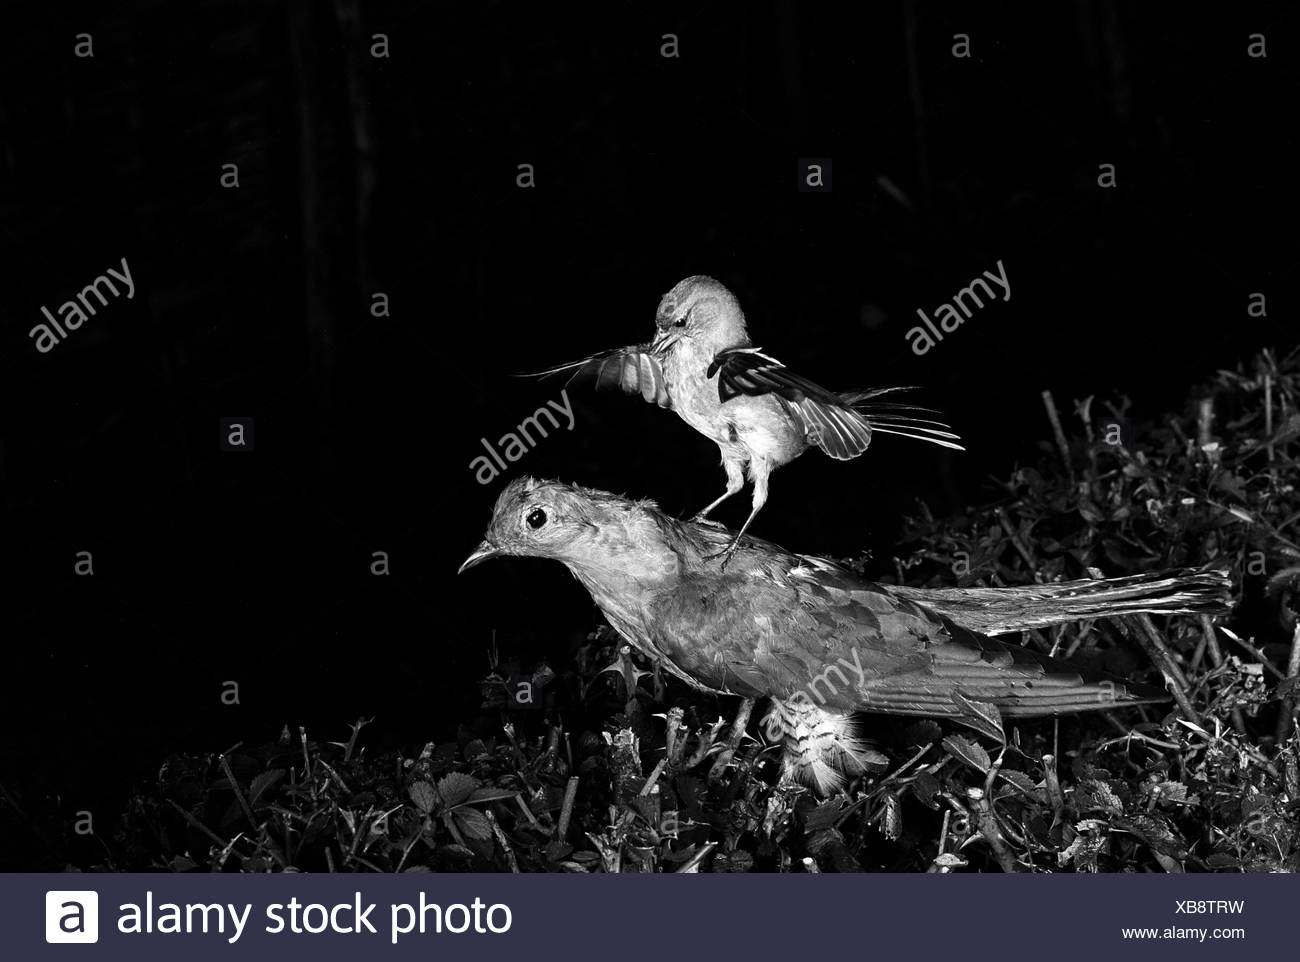 Chaffinch attacking a stuffed Cuckoo Staverton 1948. Photographed by Eric Hosking using a High Speed Flash unit to stop - Stock Image